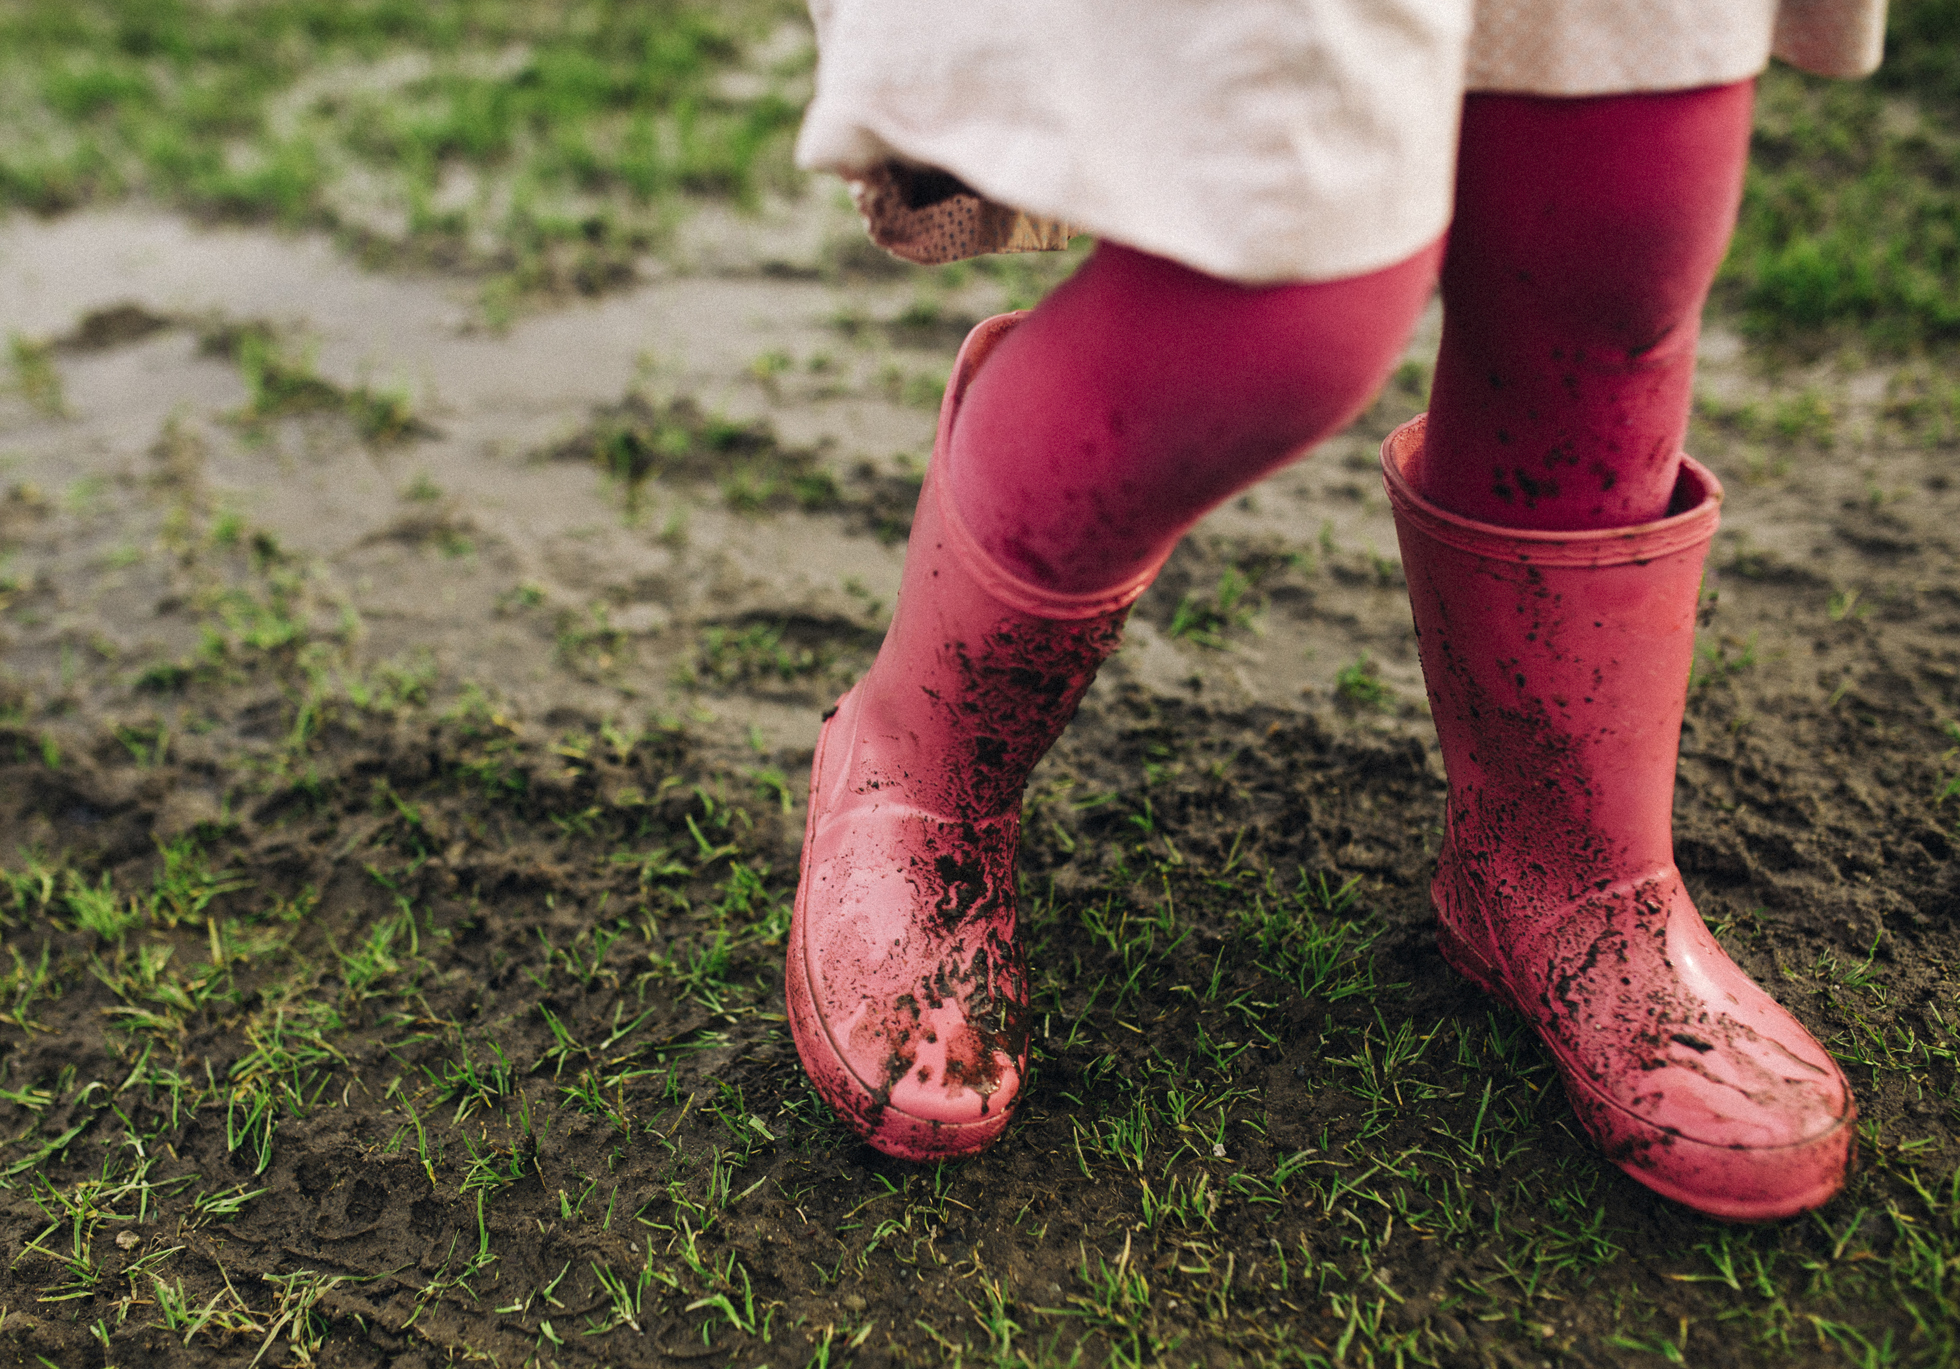 Rainboots in a mud puddle